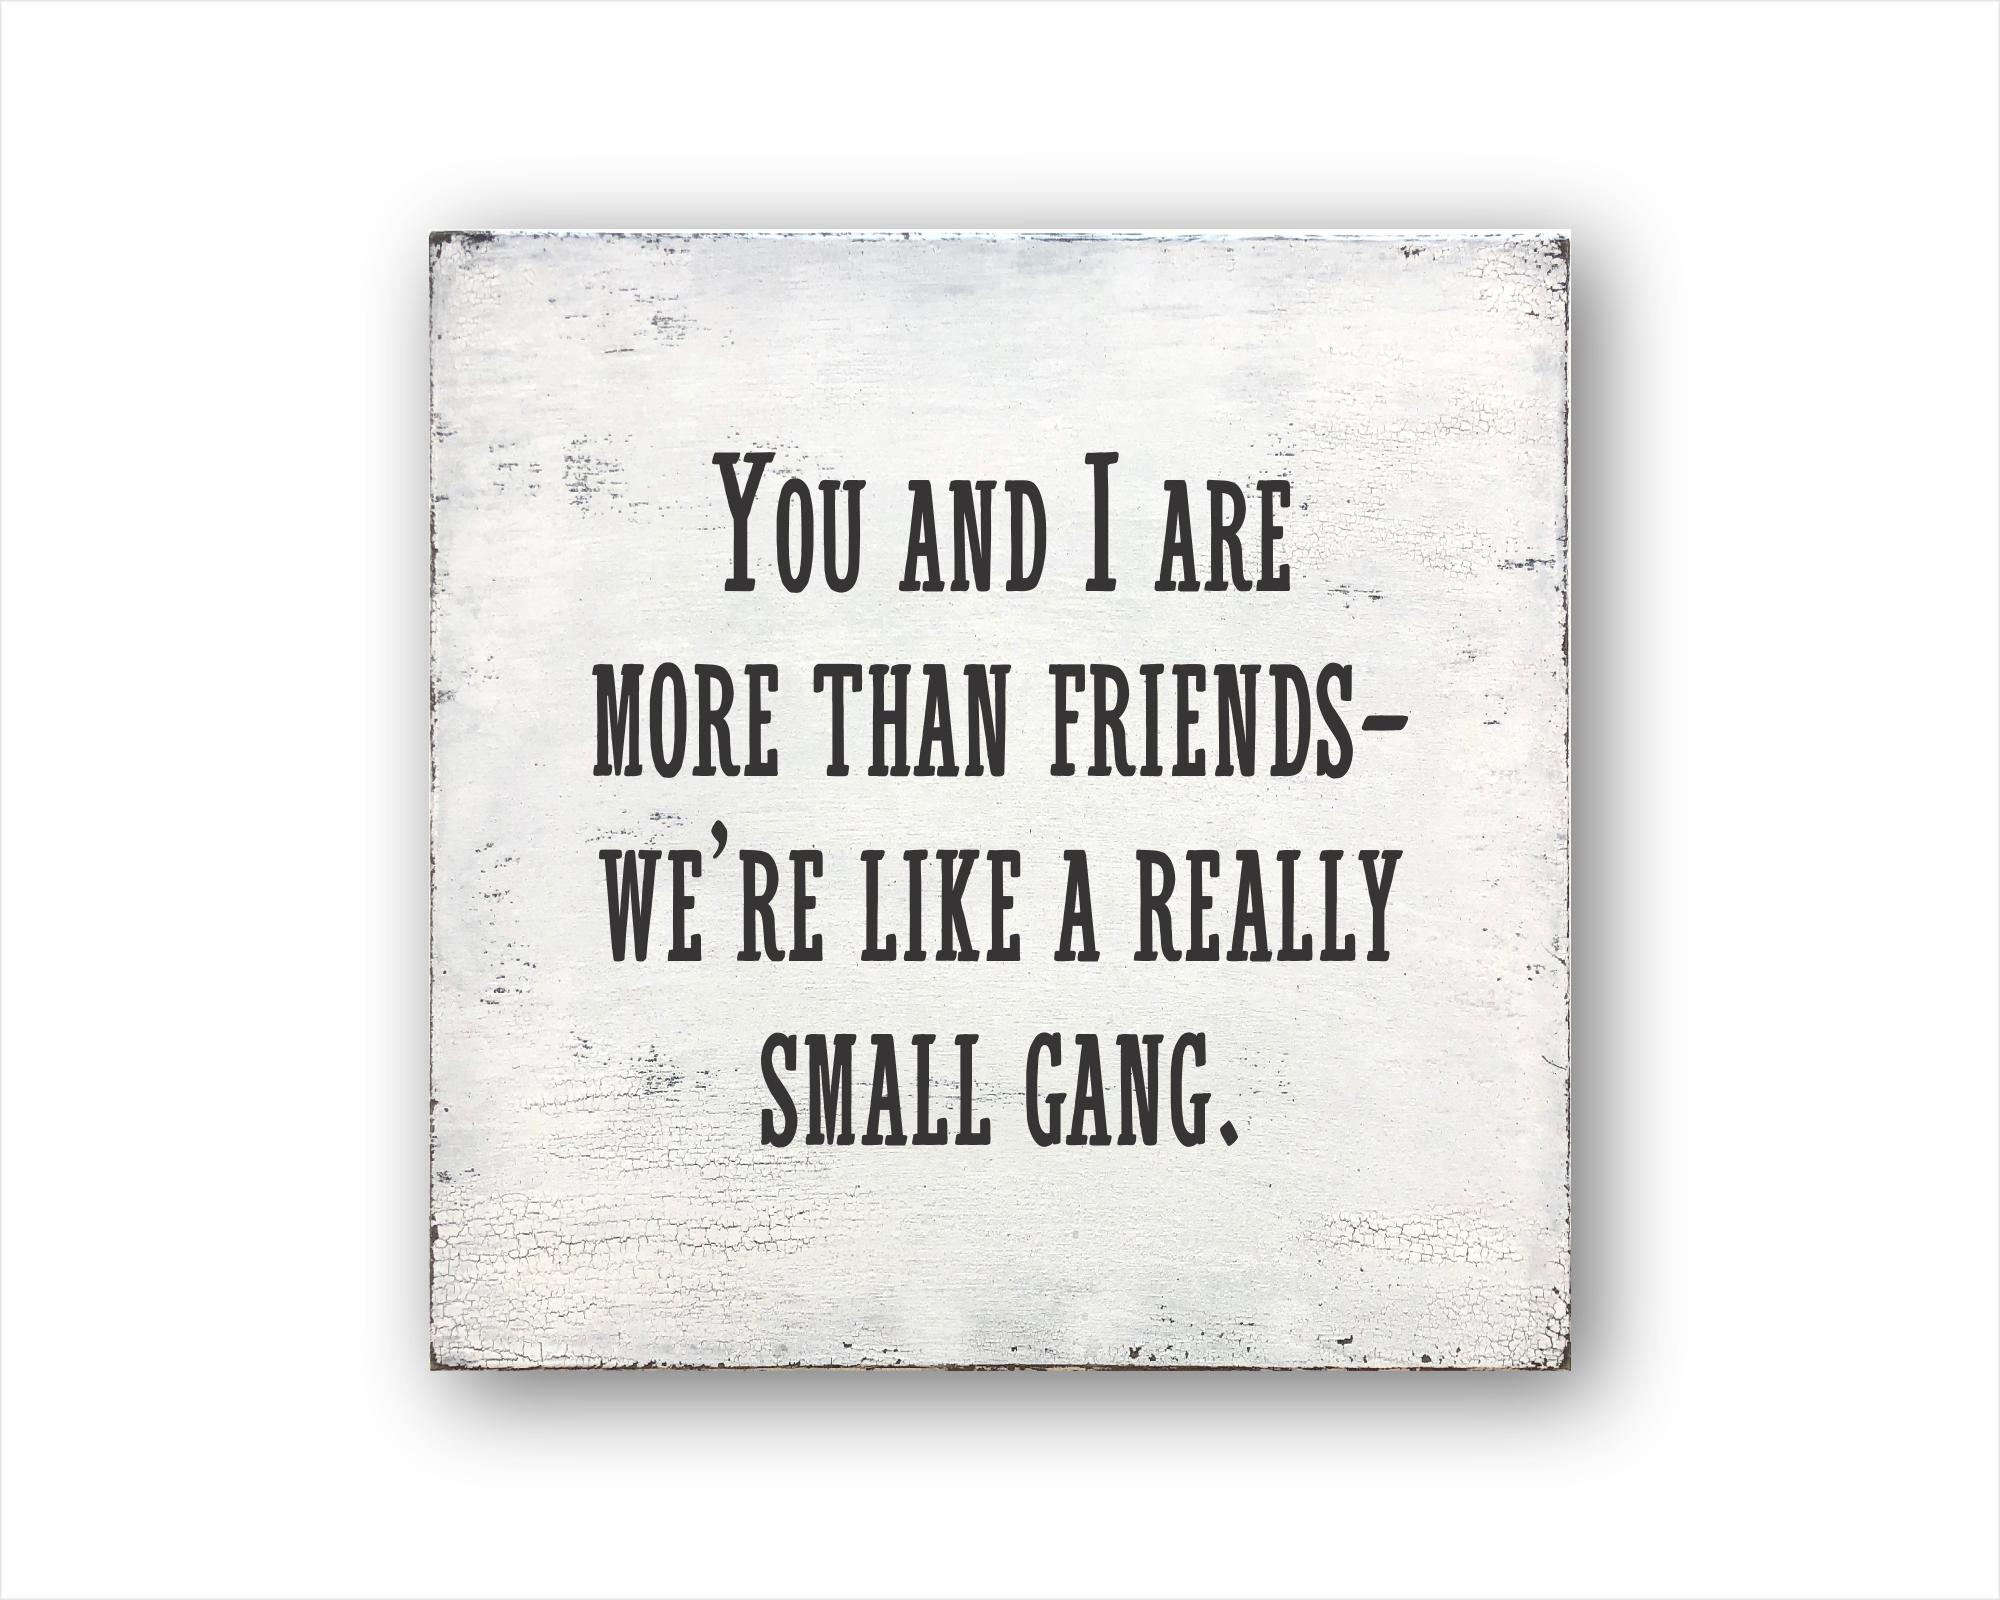 You And I Are More Than Friends We're Like A Really Small Gang: Rustic Square Wood Sign